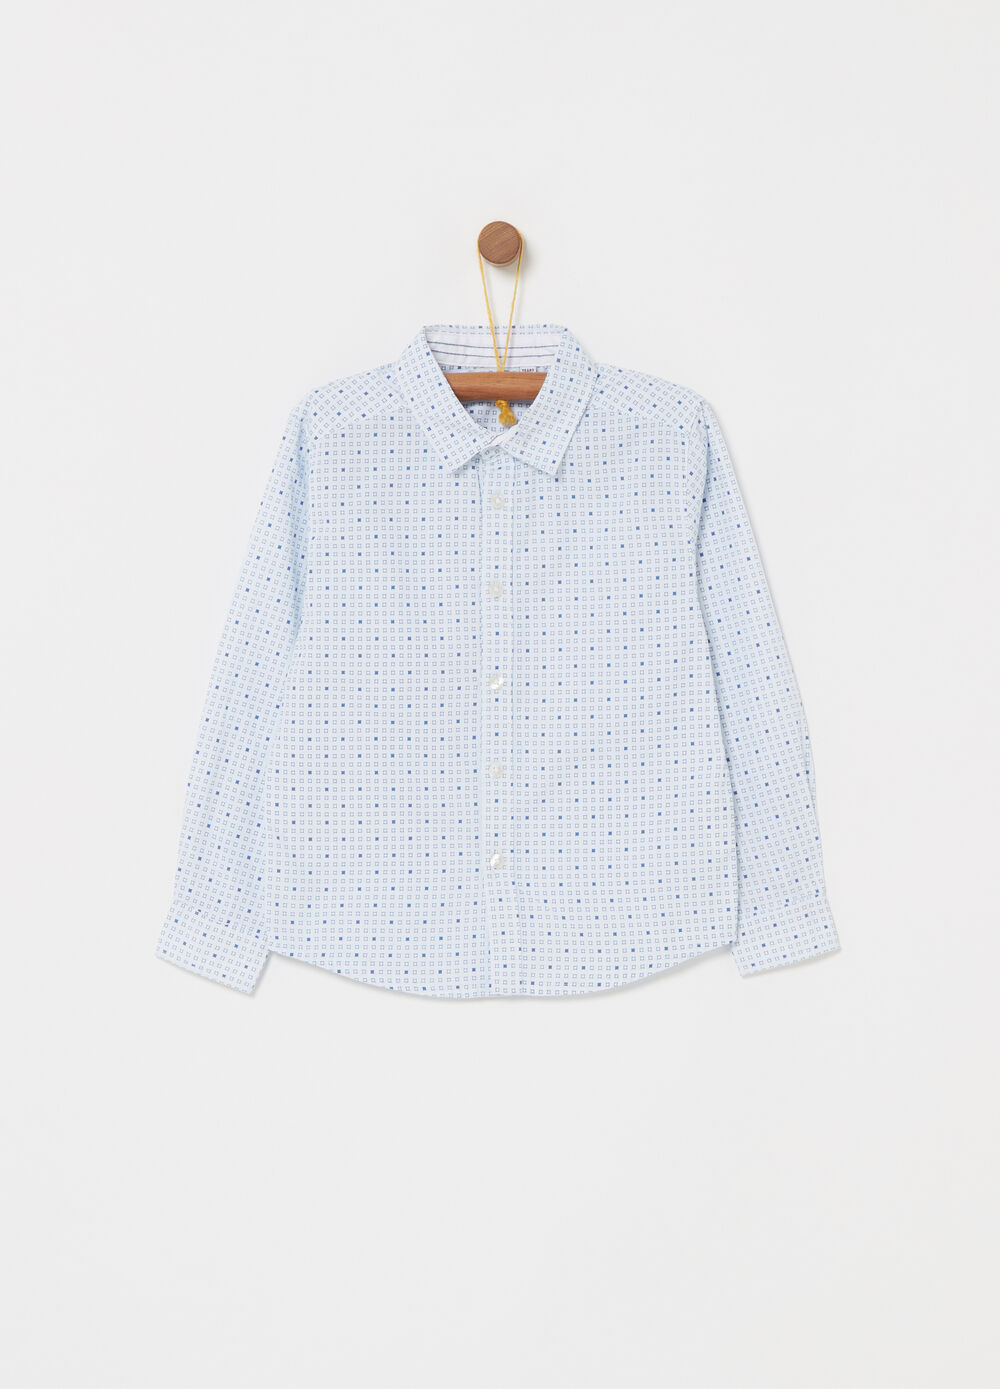 Poplin shirt with geometric pattern